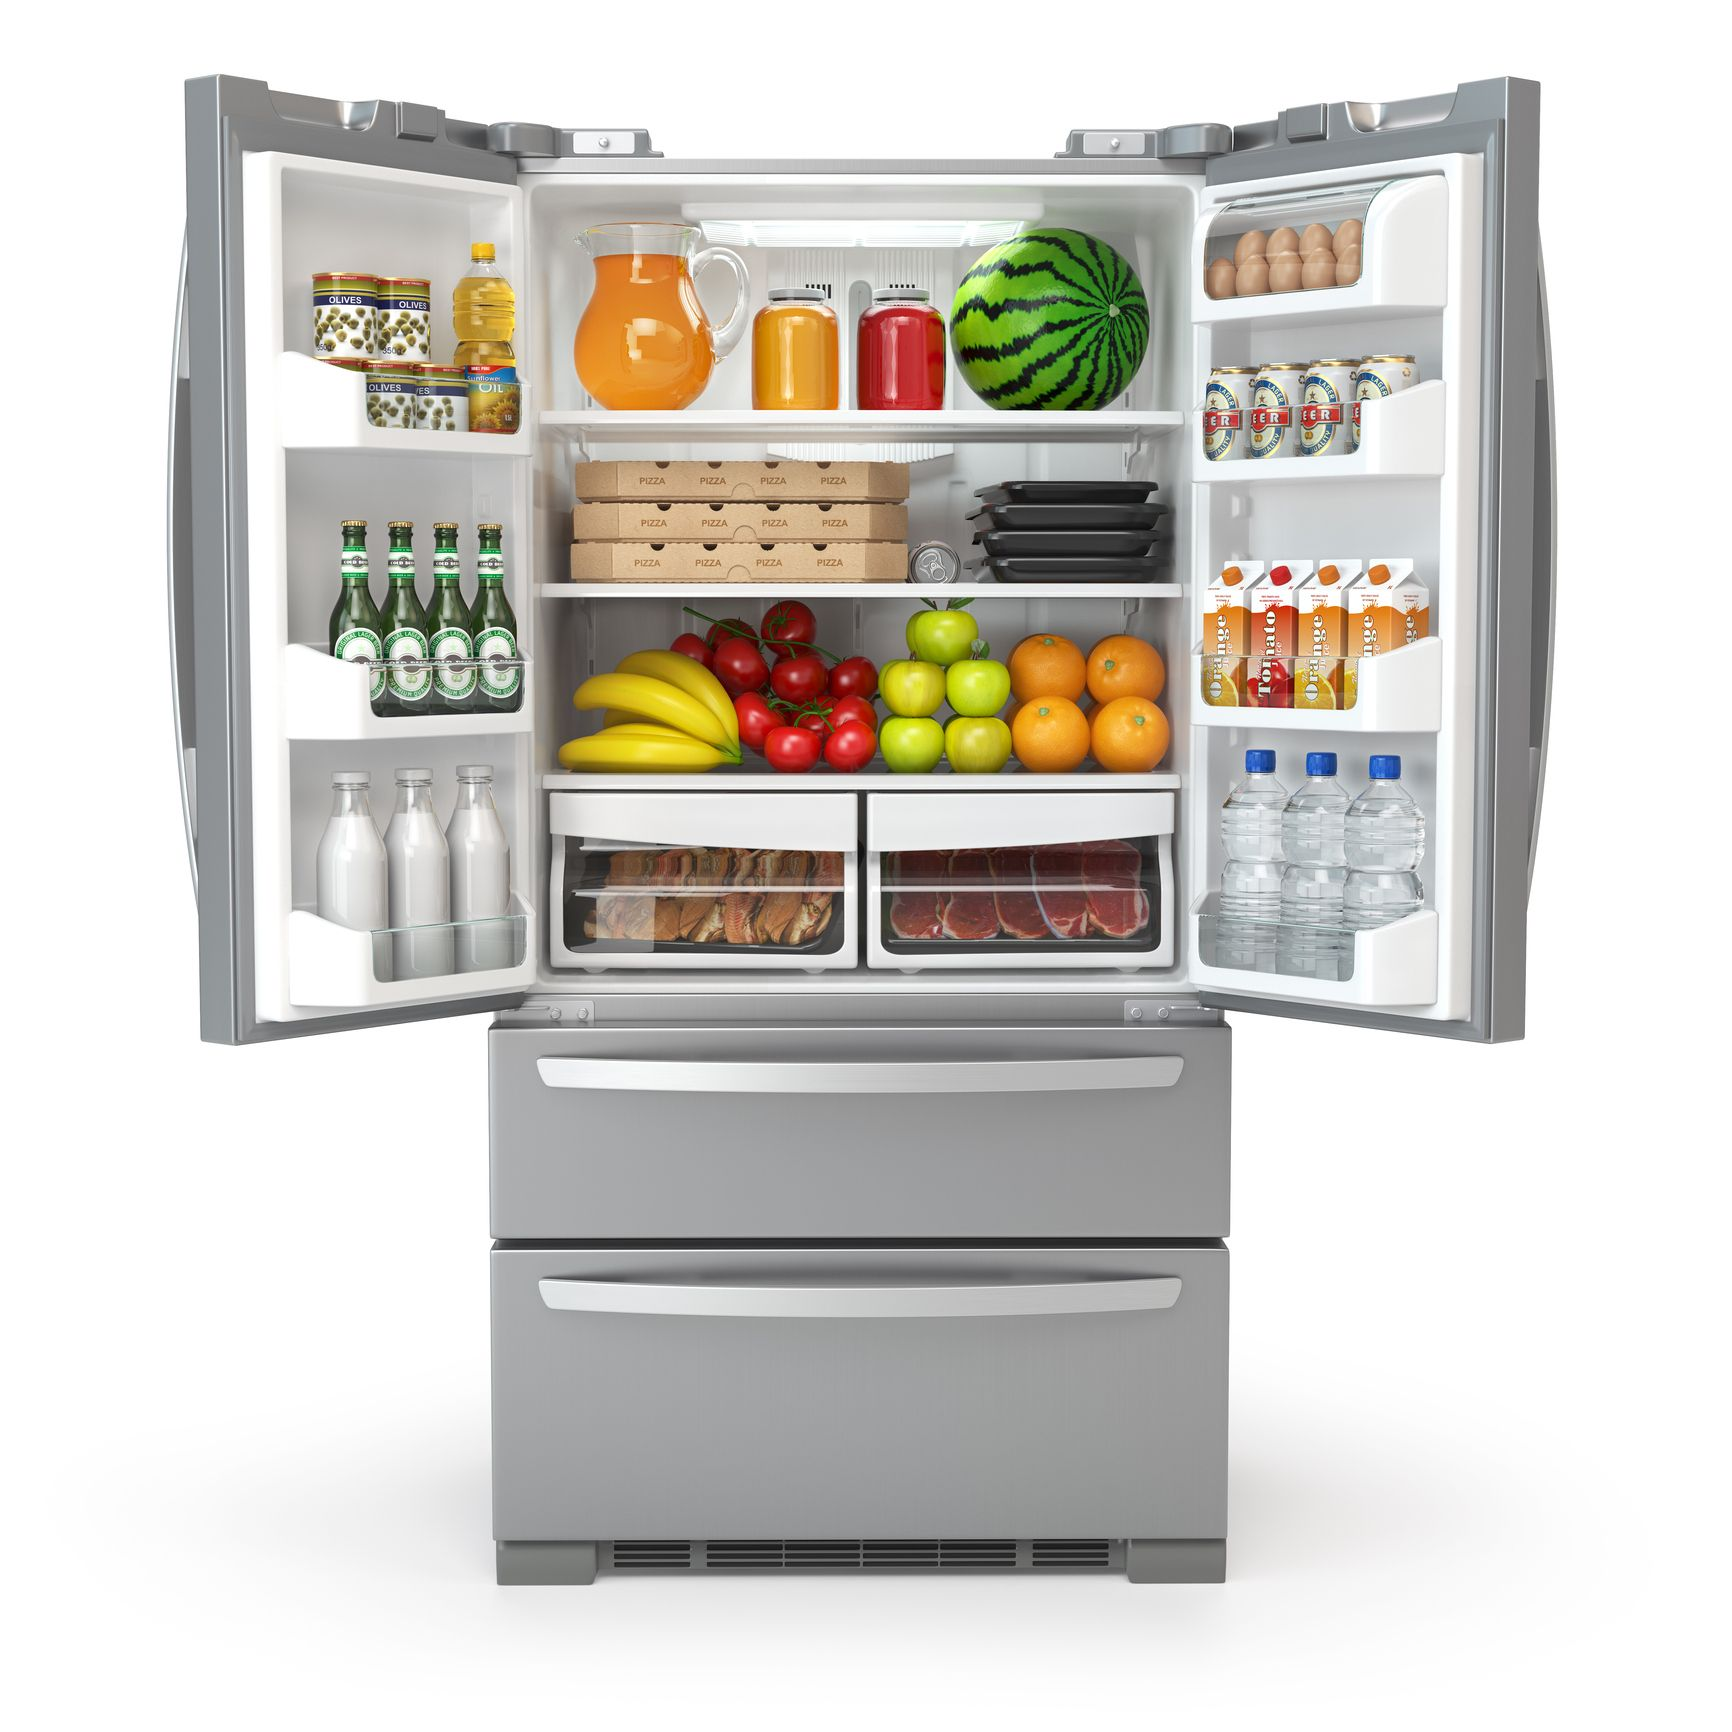 Open fridge refrigerator  full of food and drinks isolated on white background